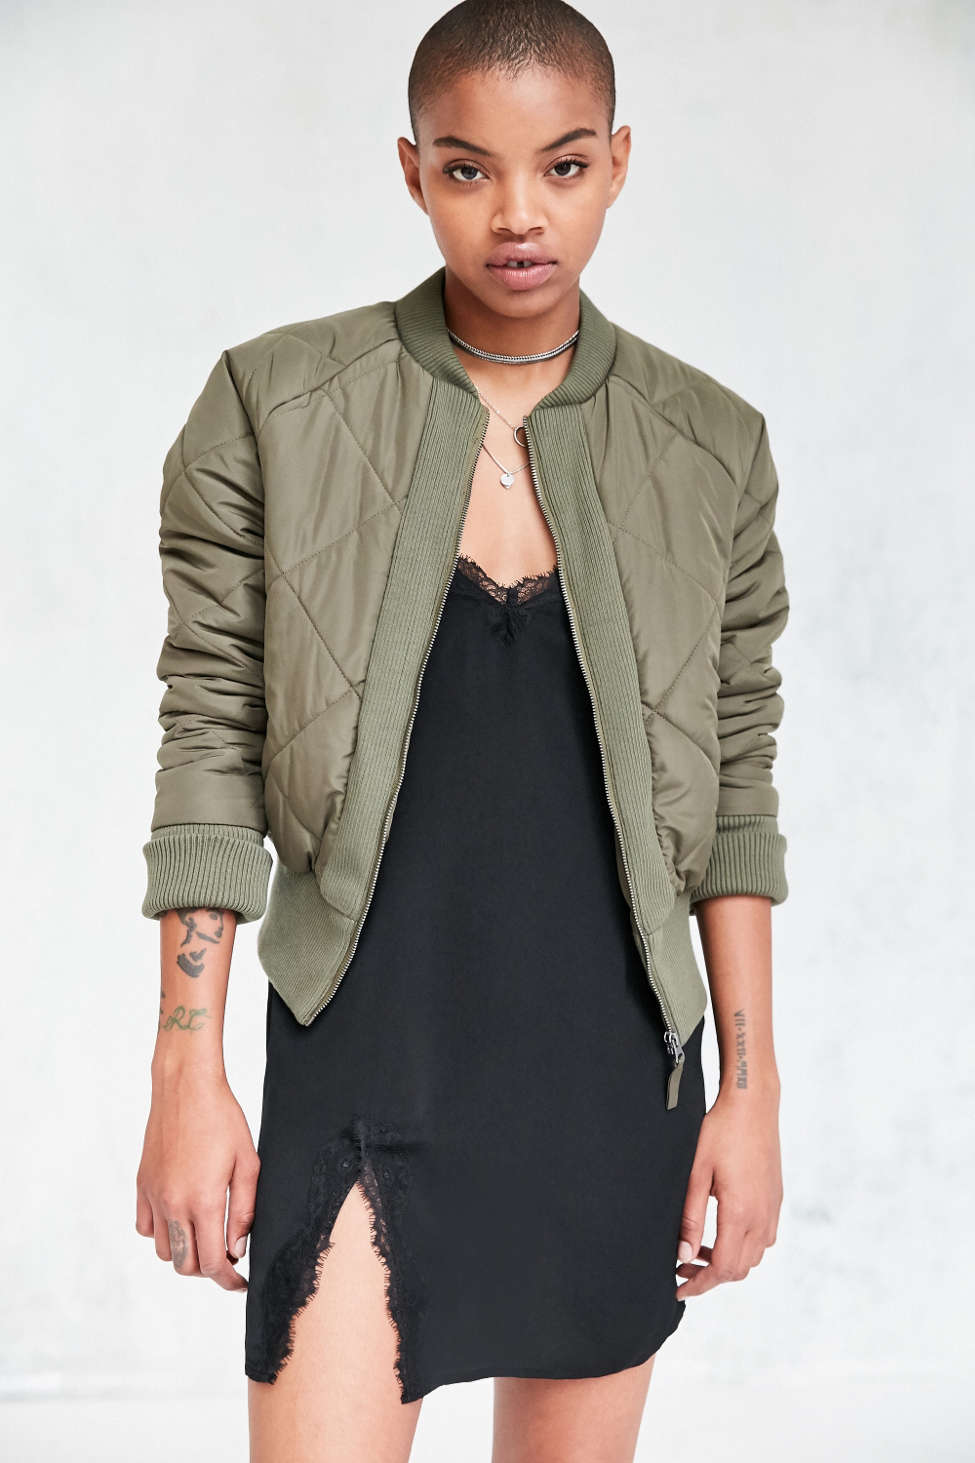 http://www.urbanoutfitters.com/urban/catalog/productdetail.jsp?id=39356654&color=031&category=W-COATS-BOMBER